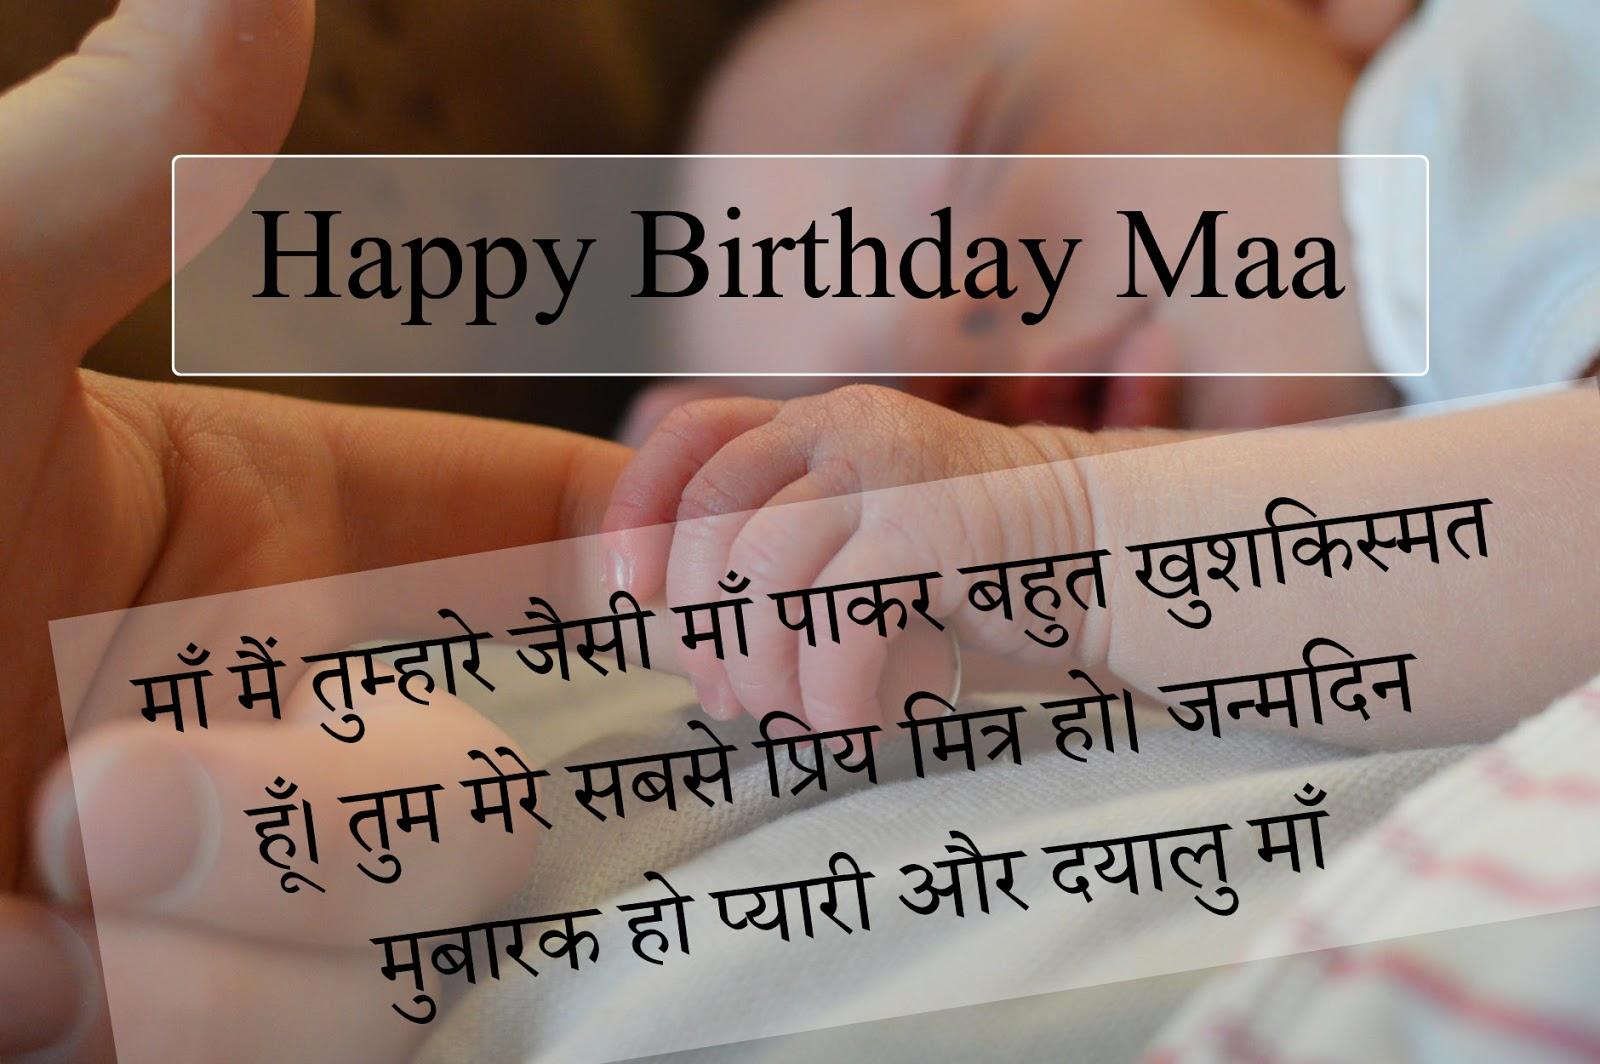 Happy Birthday Mom Birthday Wishes For Mother In Hindi